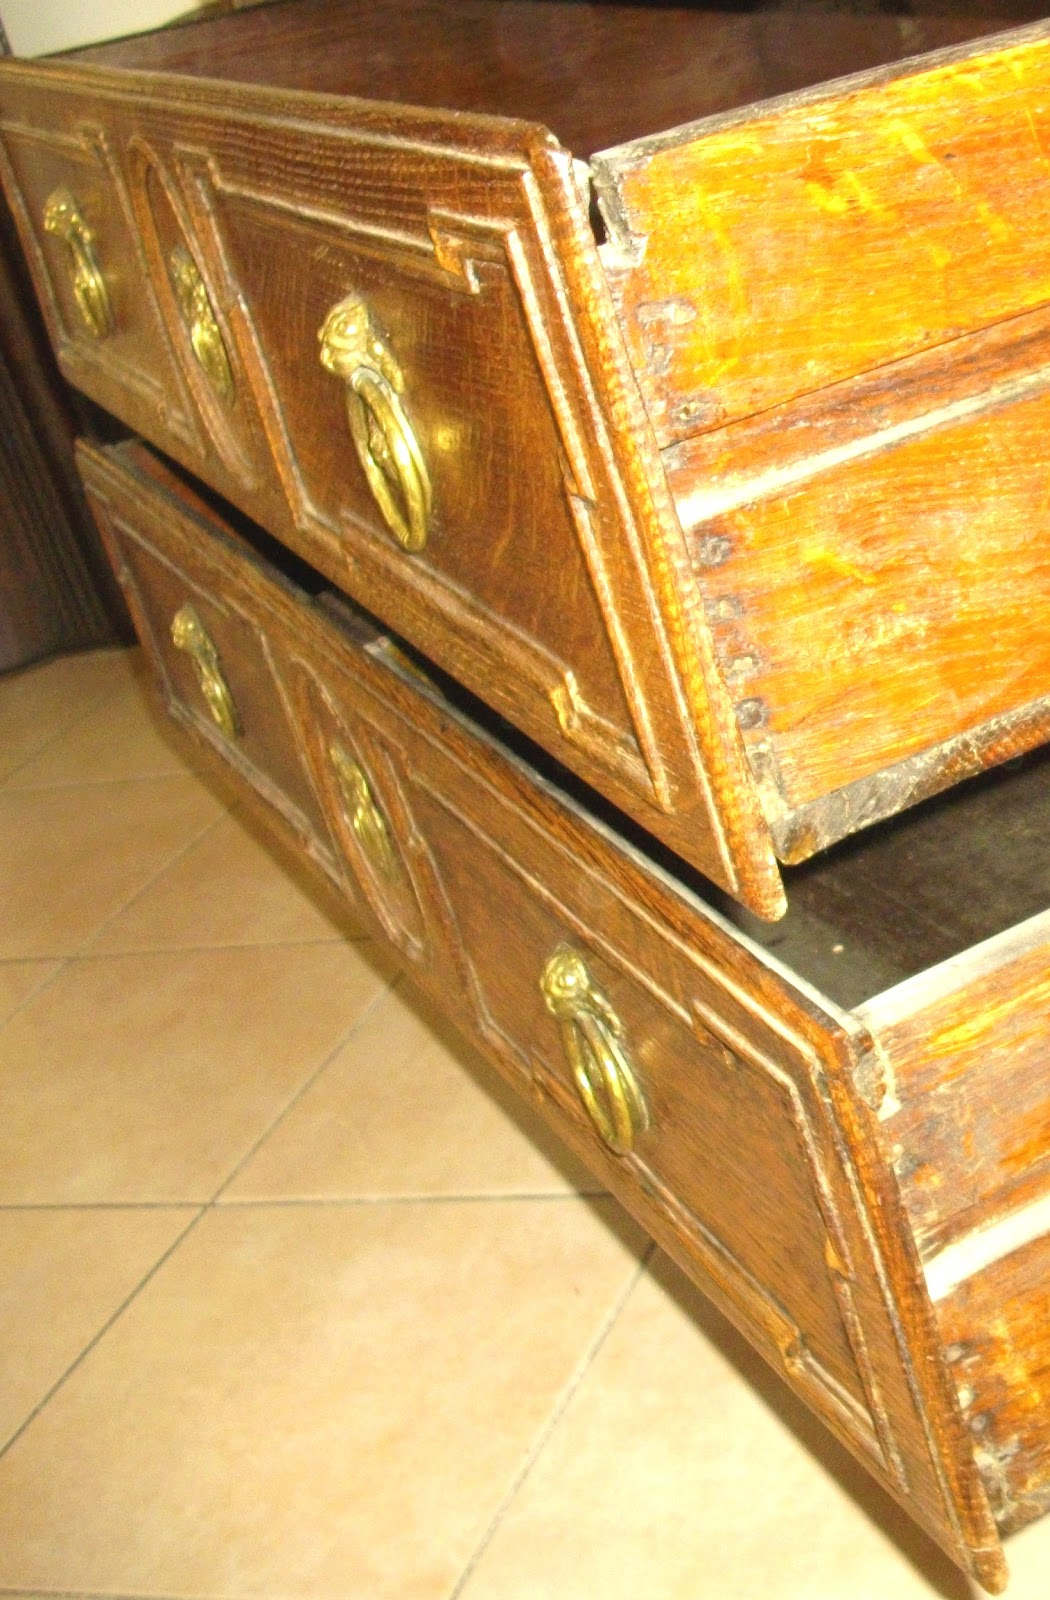 meuble ancien bureau pente secr taire dos d ane a secret louis xvi showroom didoulabrocante. Black Bedroom Furniture Sets. Home Design Ideas